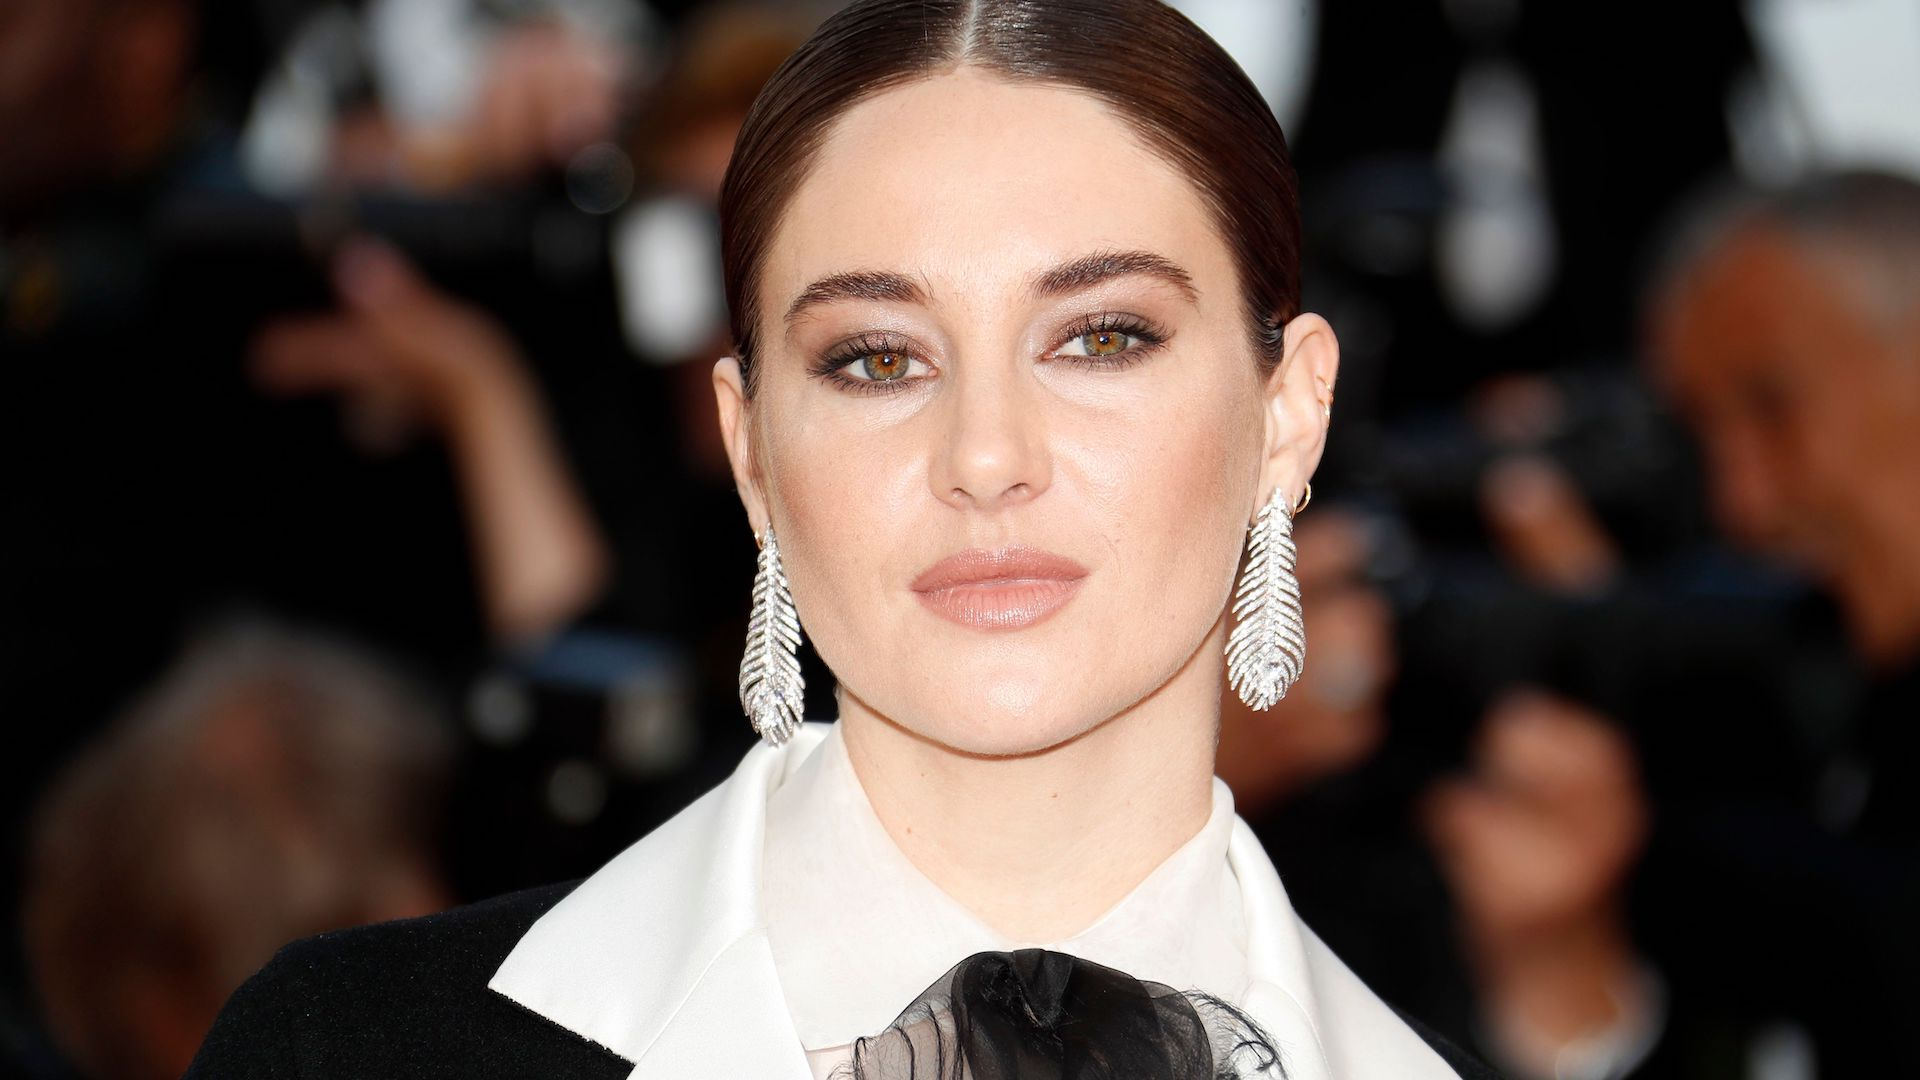 Shailene Woodley Just Took the Tuxedo Look to a Whole New Level, and It's Actually *Iconic*